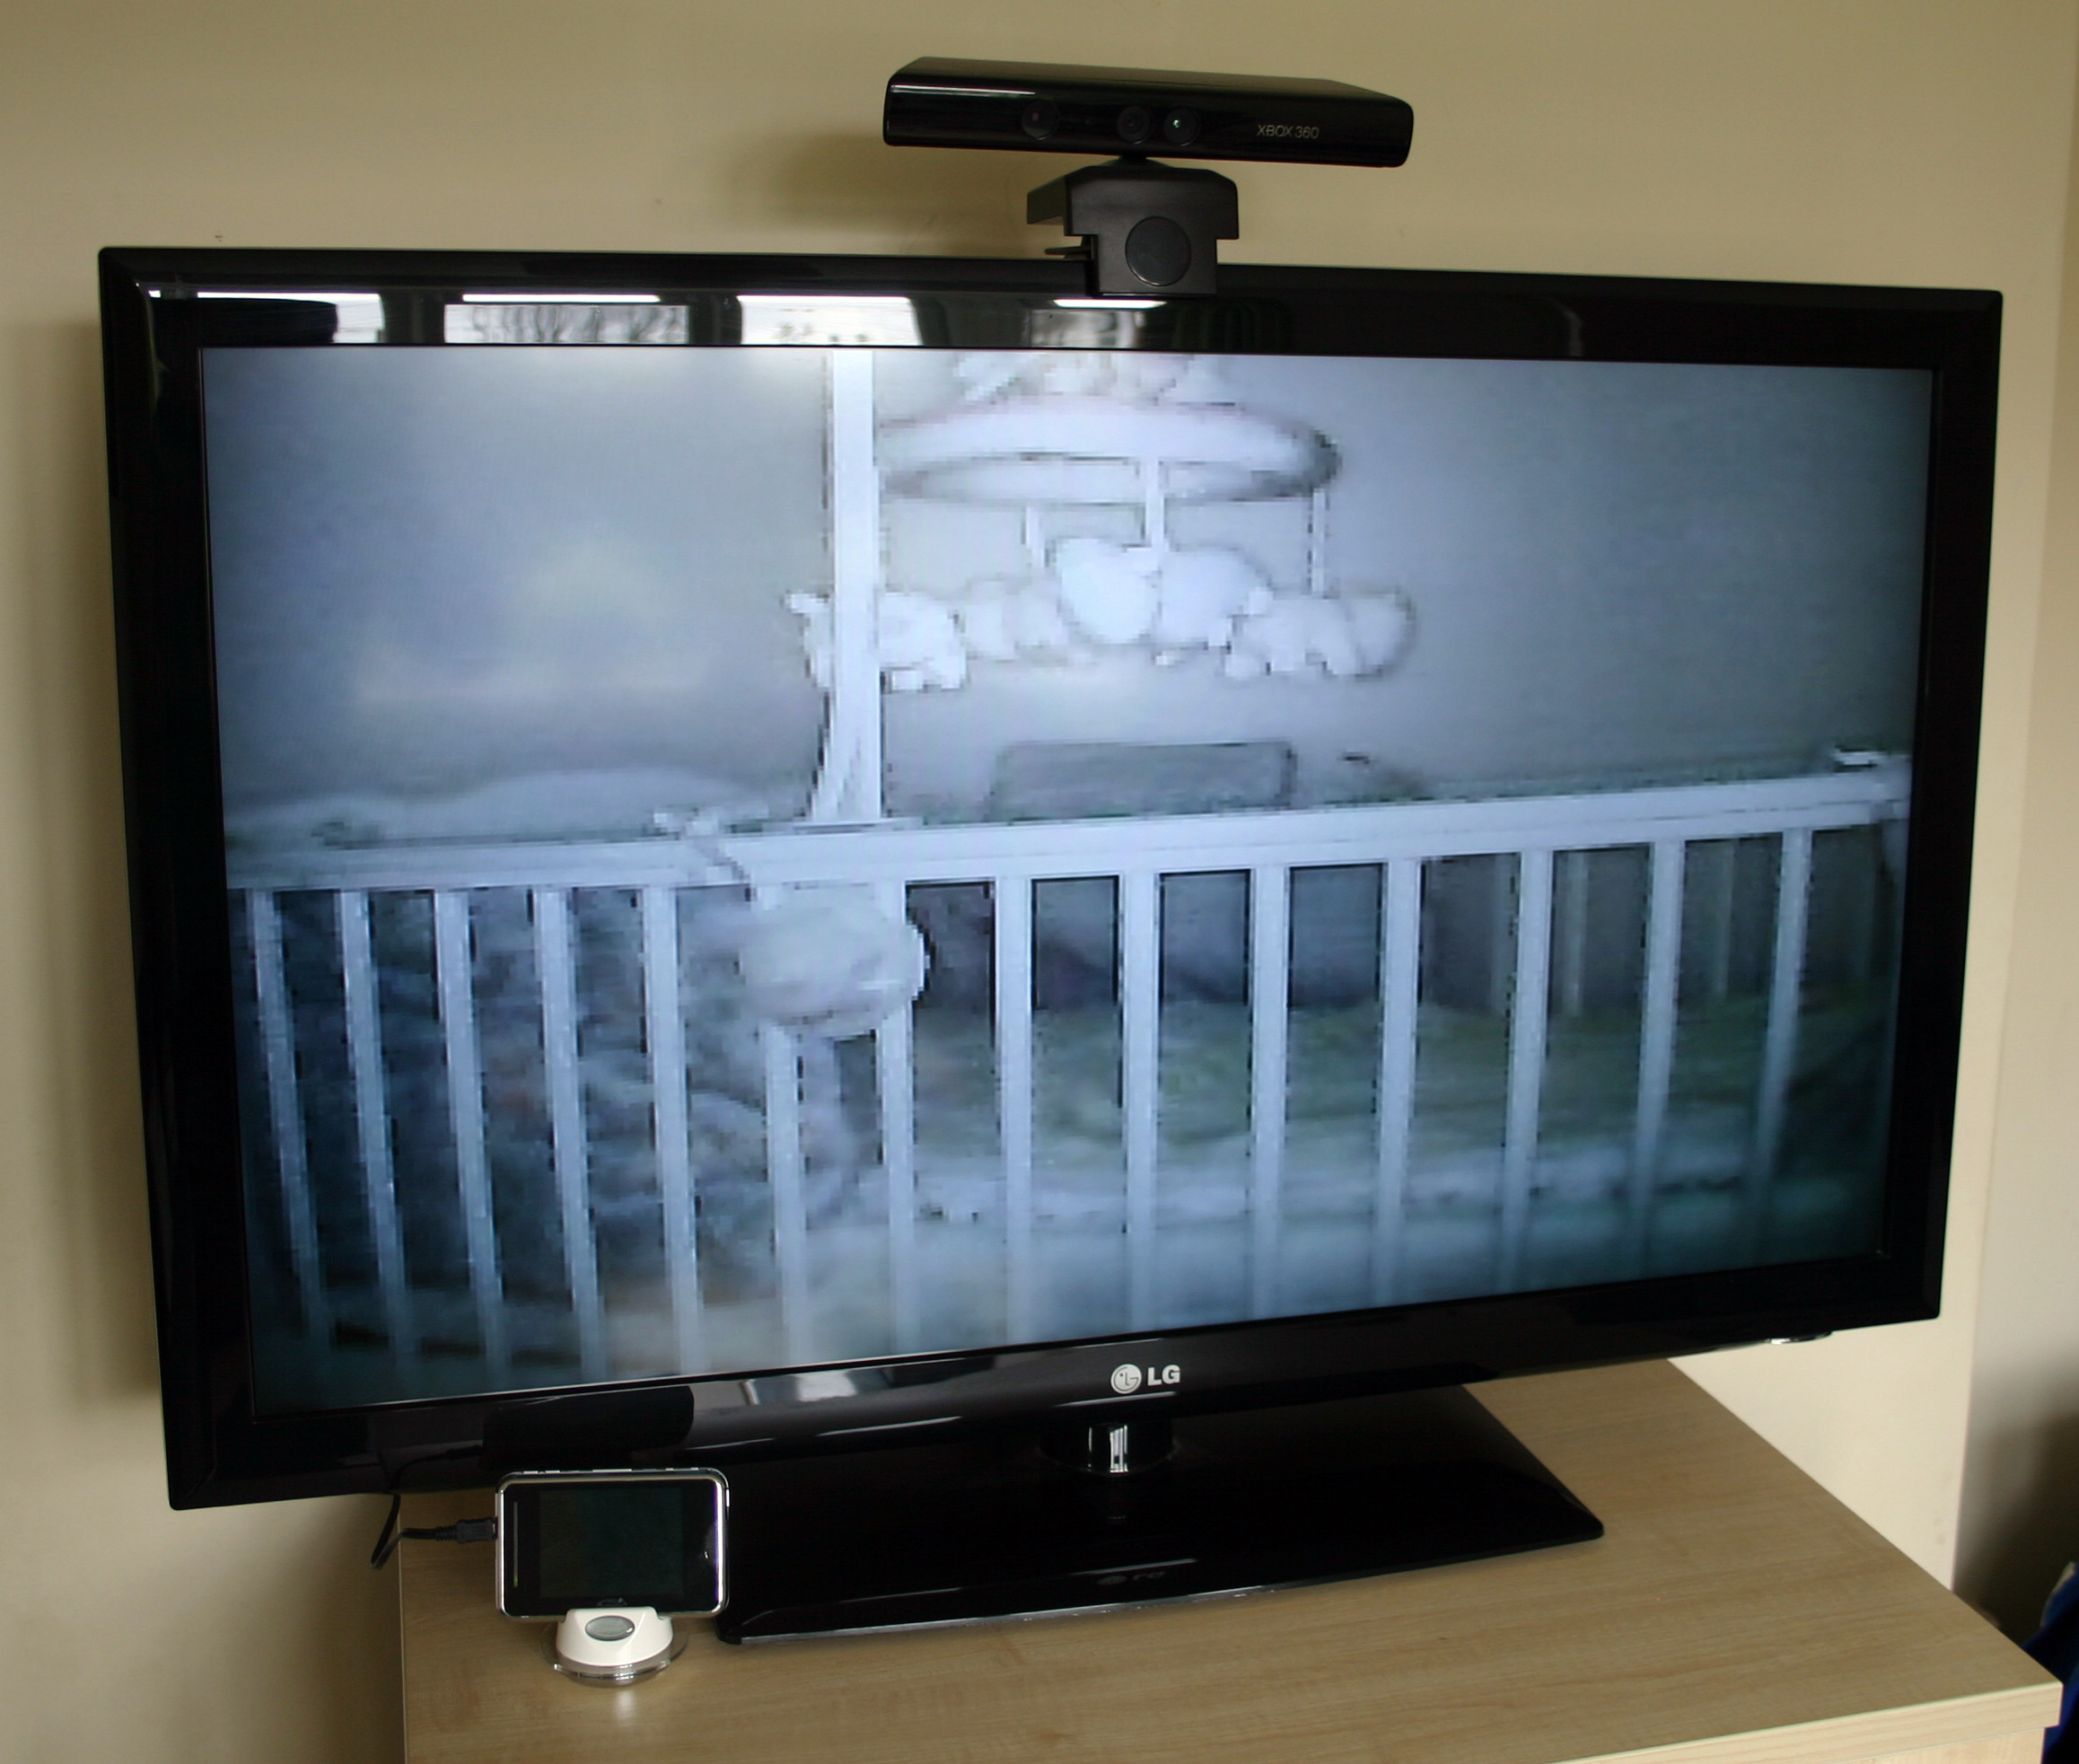 The unit plugged into the Television.